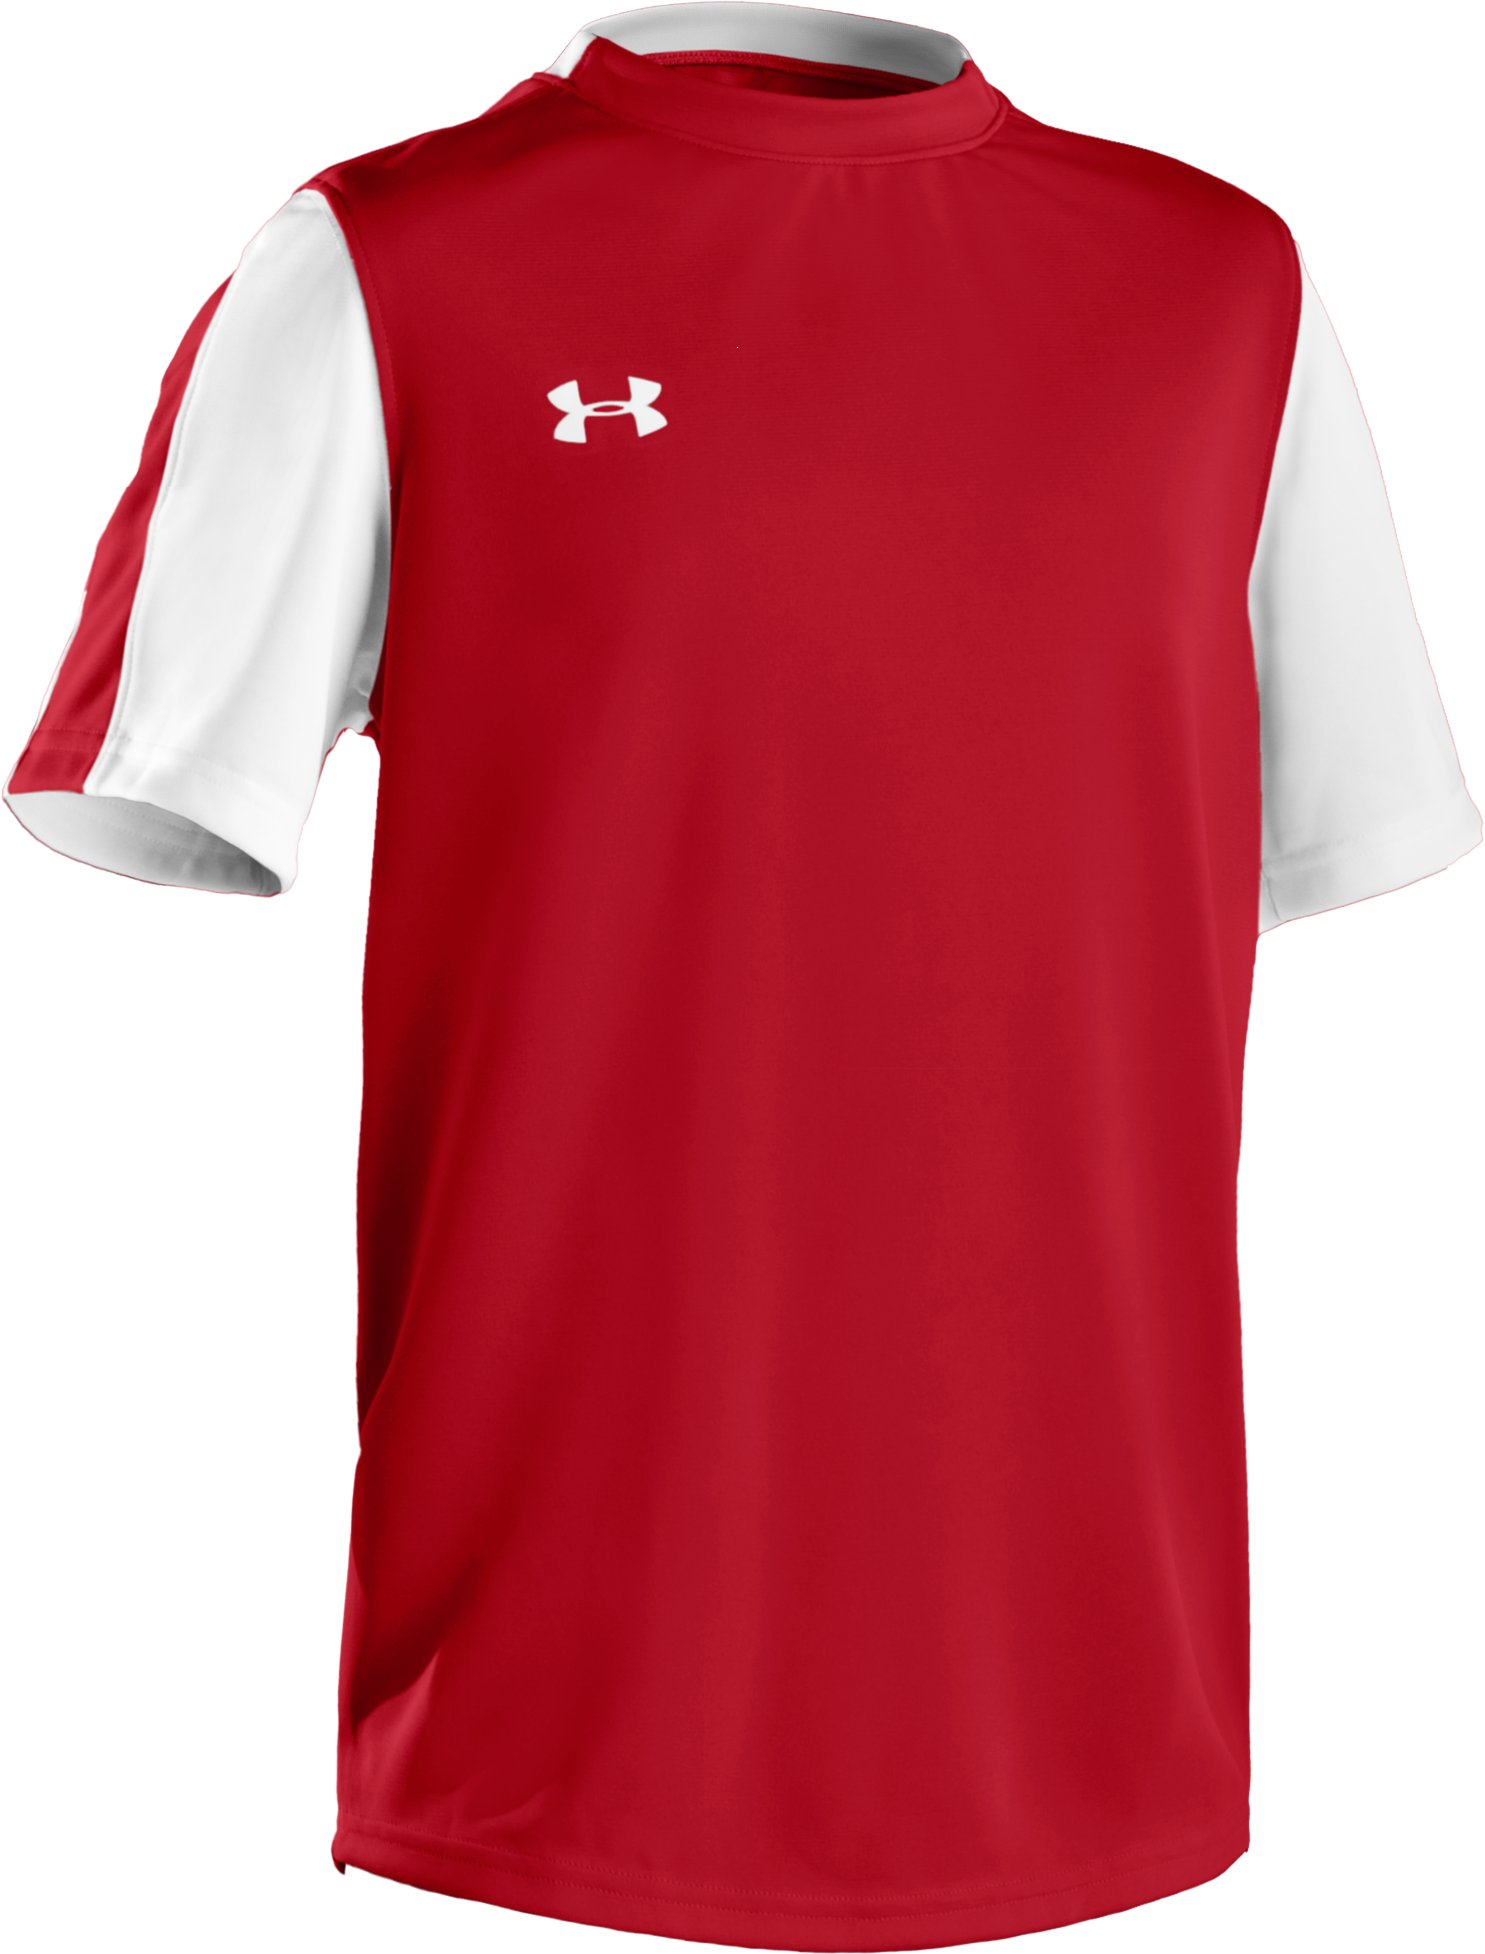 Boys' UA Classic Short Sleeve Jersey, Red, zoomed image